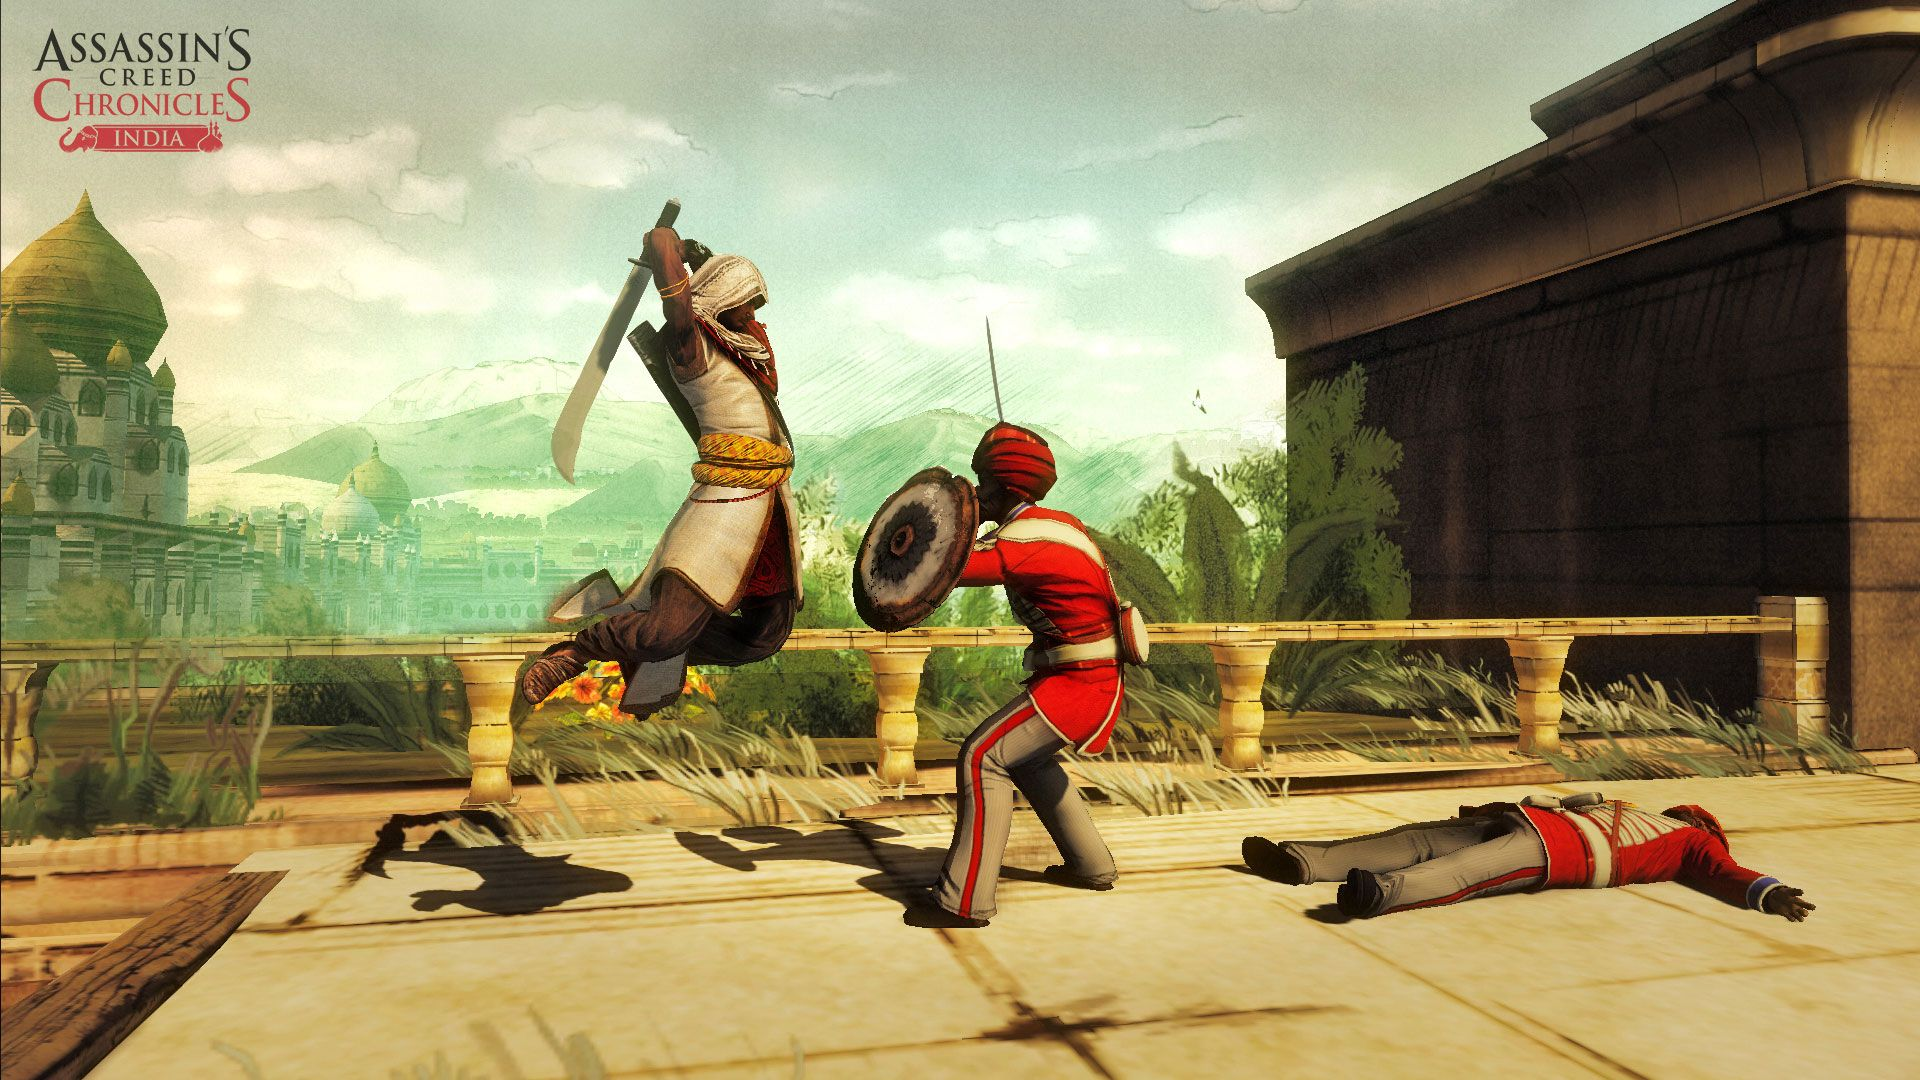 Resultado de imagen para Assassins Creed Chronicles India